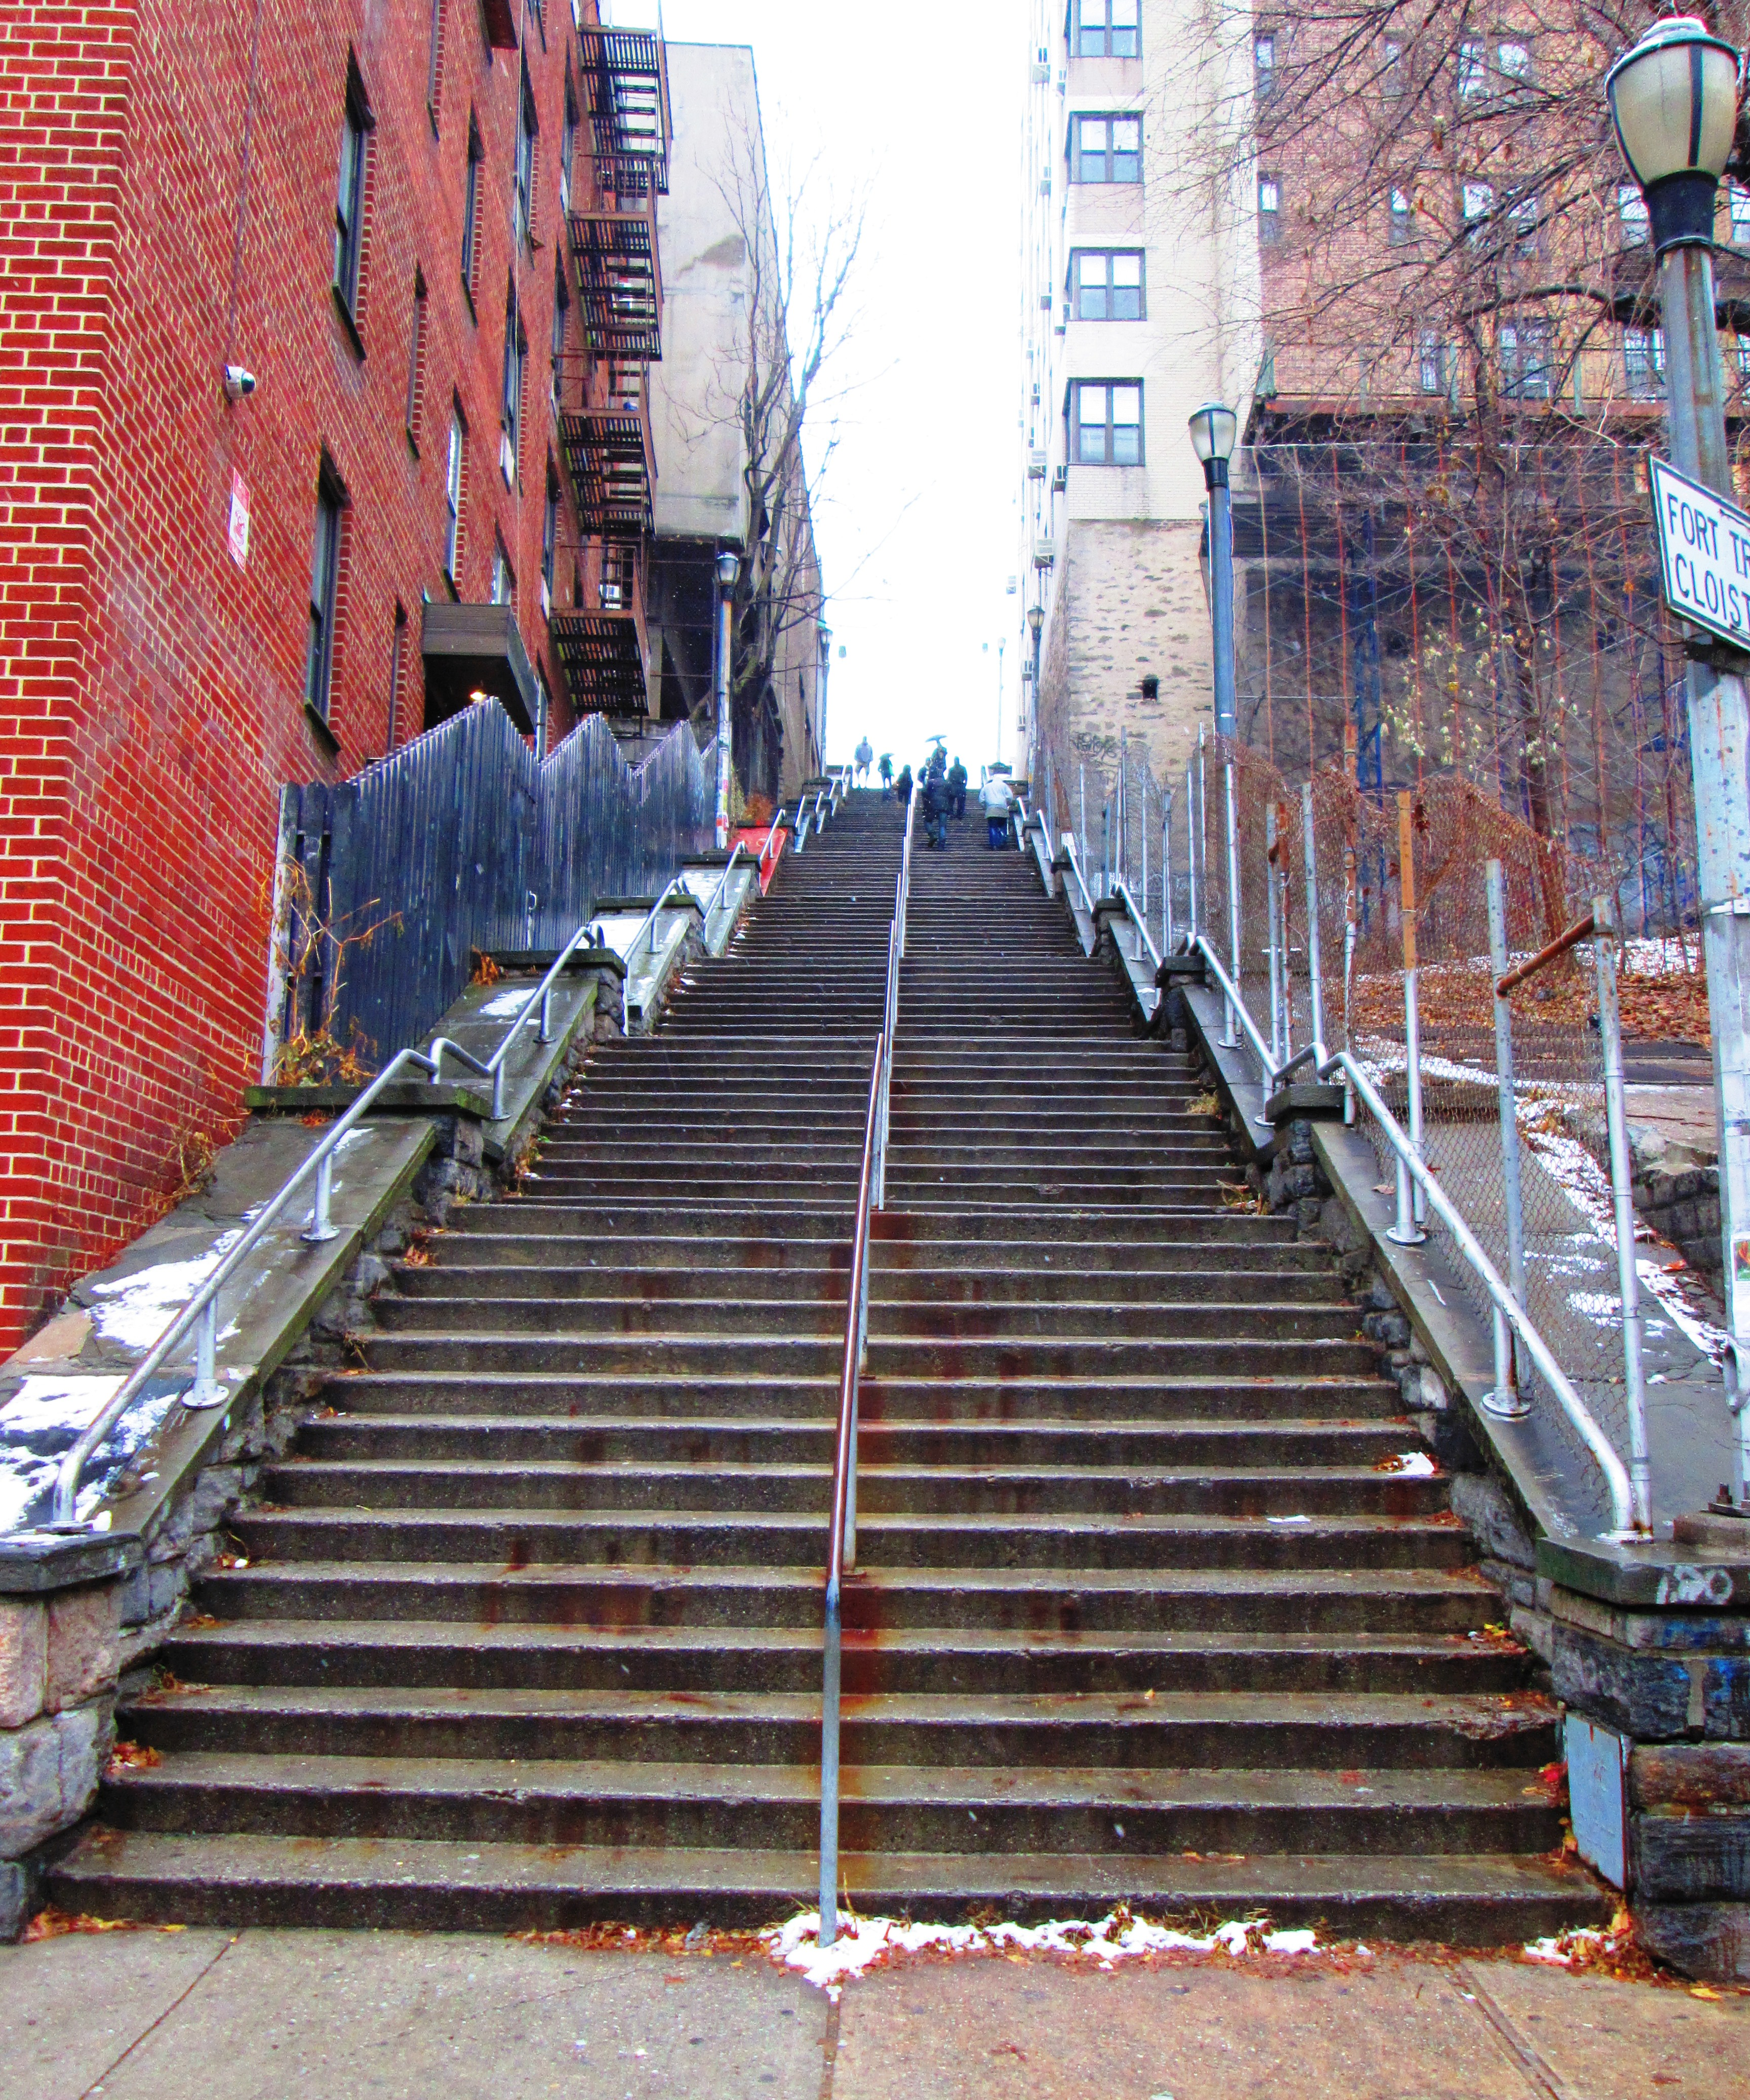 File:West 187th Street Stairs From Below